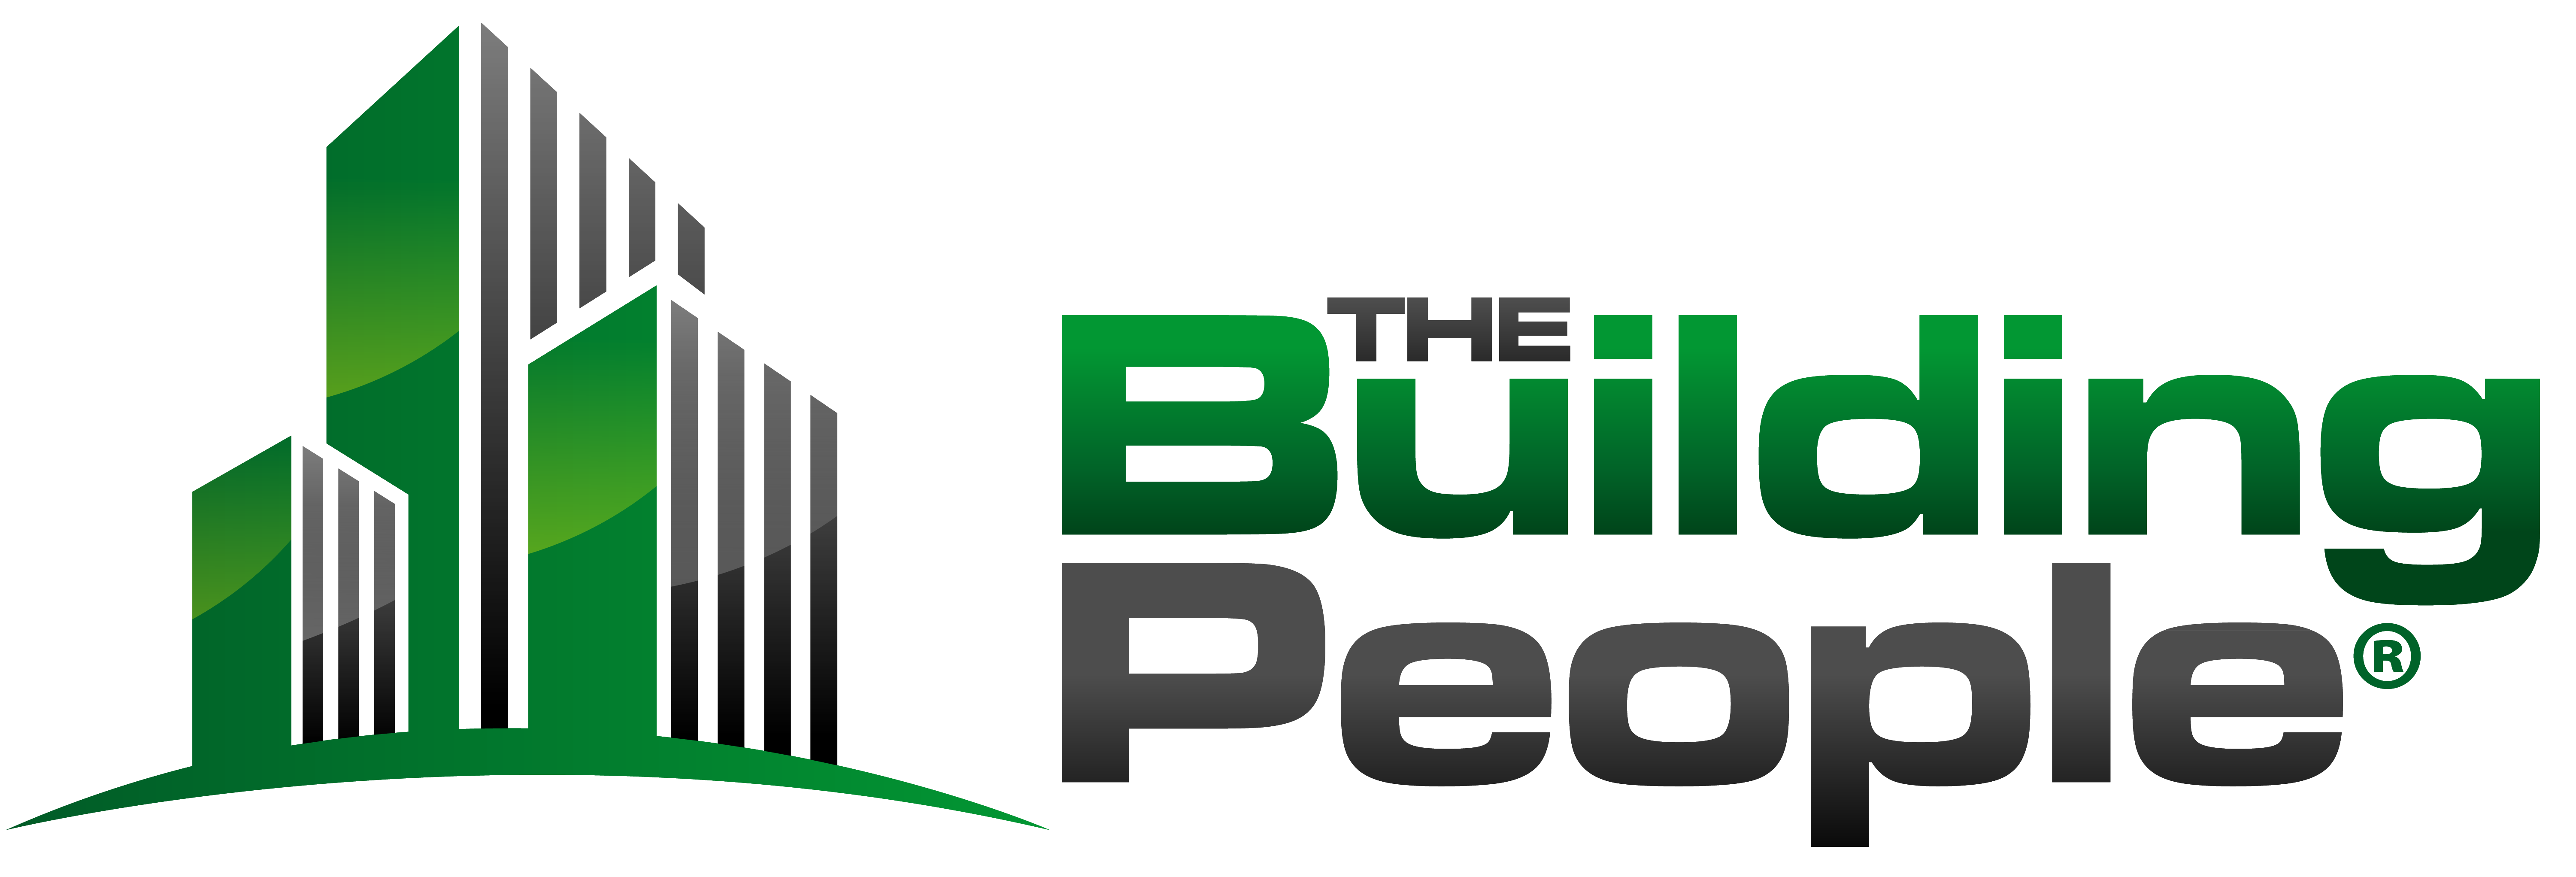 Press Release The Building People Llc Receives Hubzone